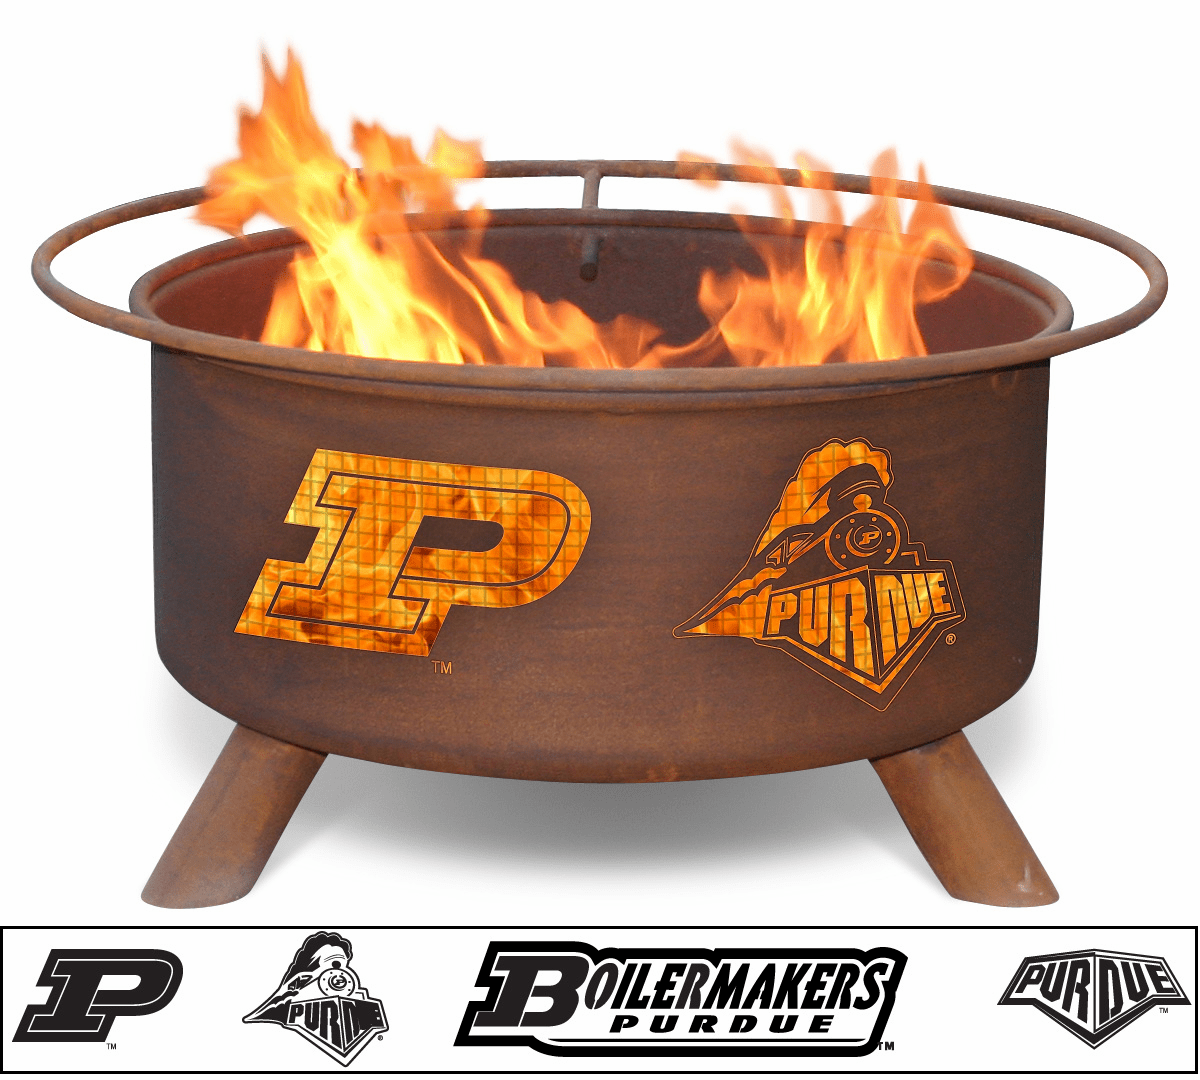 Purdue Boilermakers Logo Custom Fire Pit